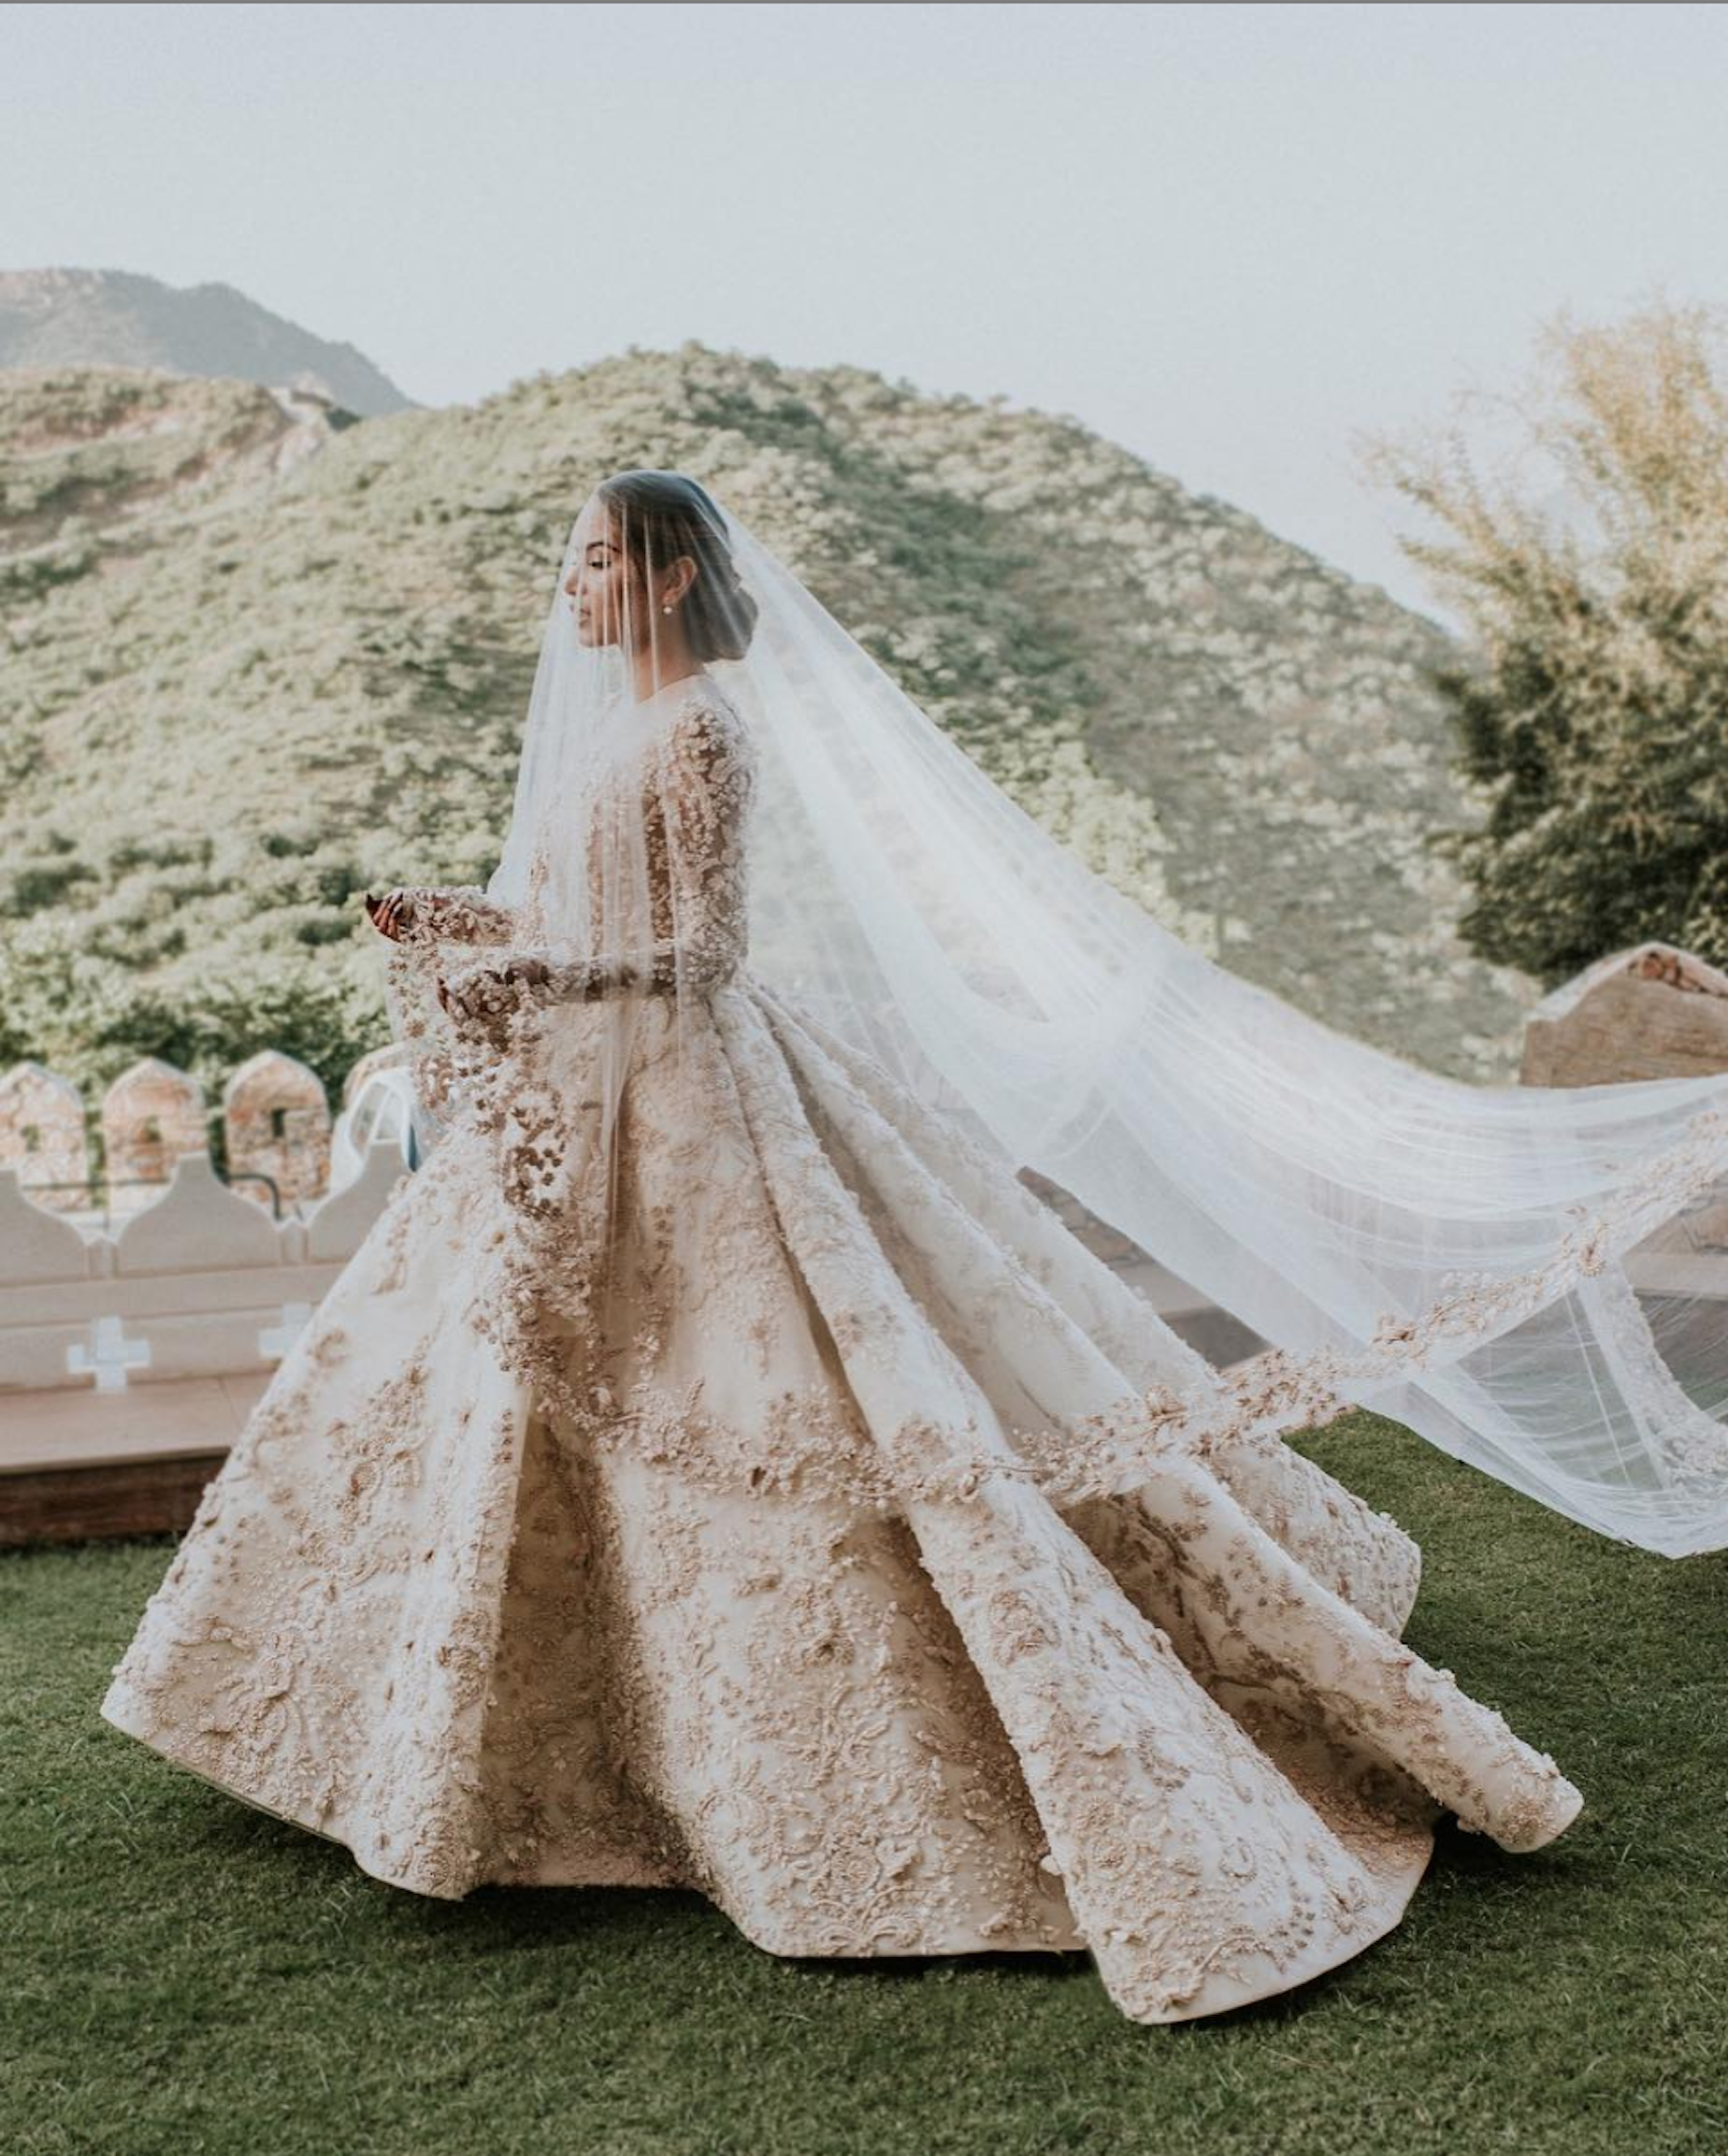 Diipa Büller-Khosla was a vision in an out of this world Ashi Studio ball gown. - The custom-made number's rich cream color highlighted its stunning details.Photo by Fih Fotografie.